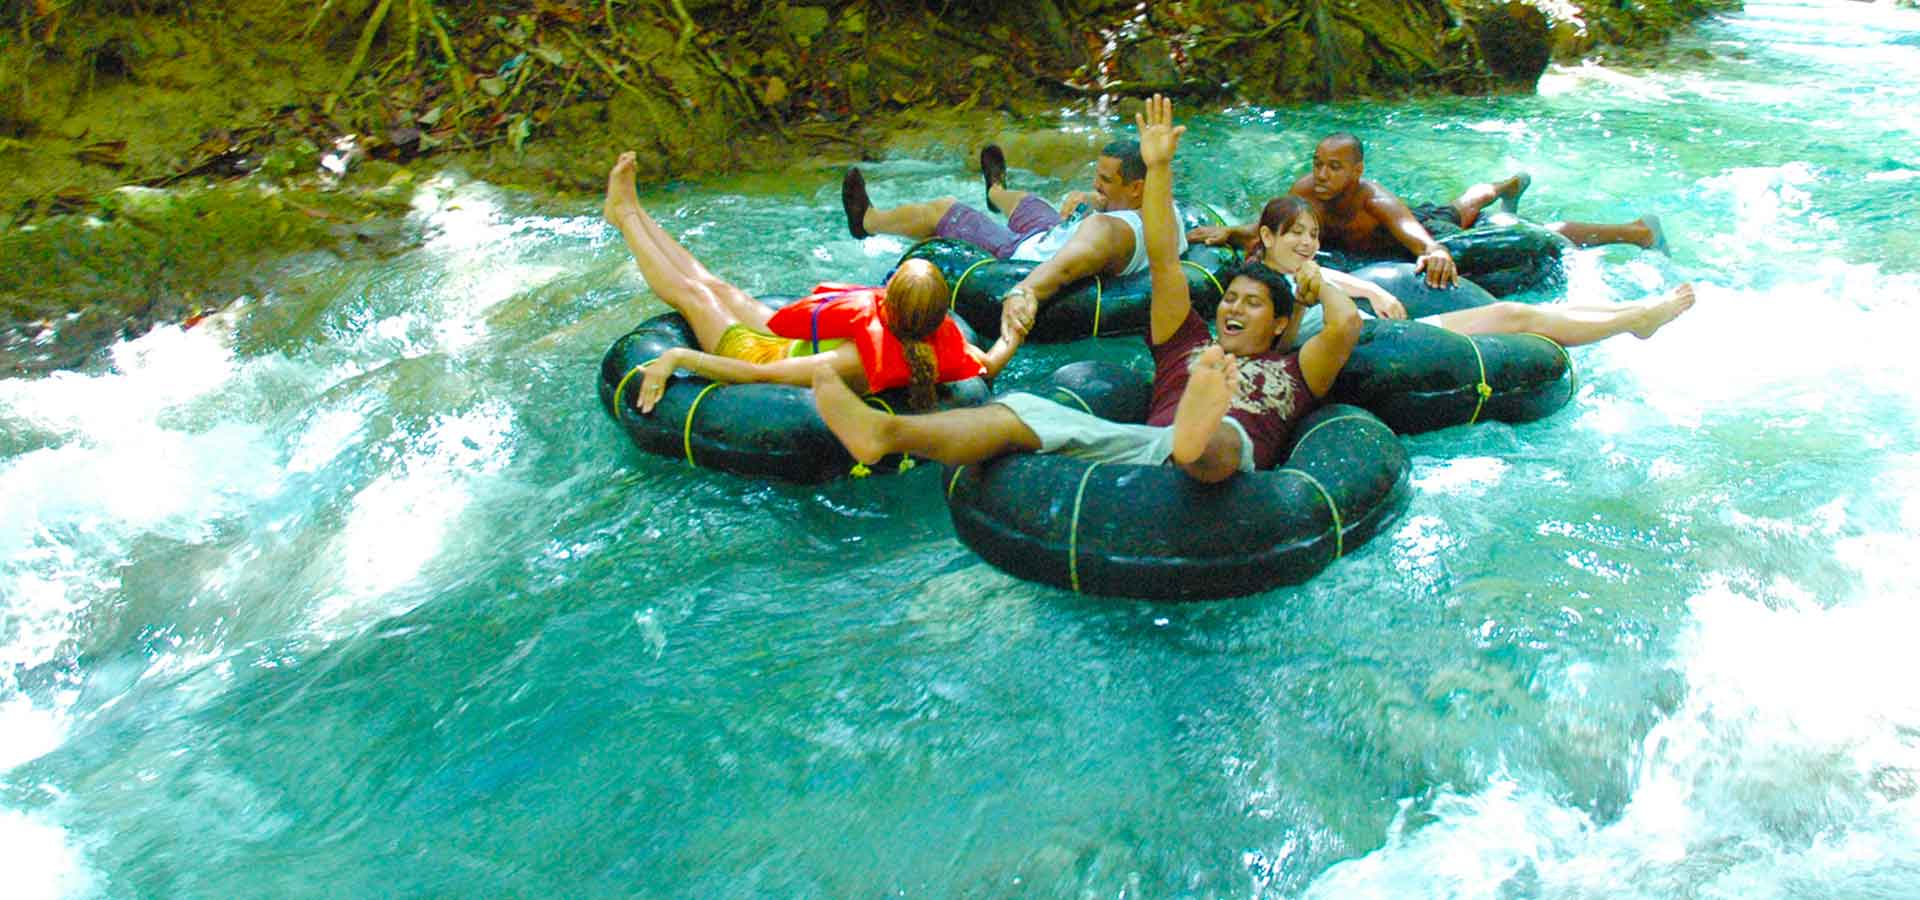 tourist enjoying their river tubing adventure in Ocho Rios